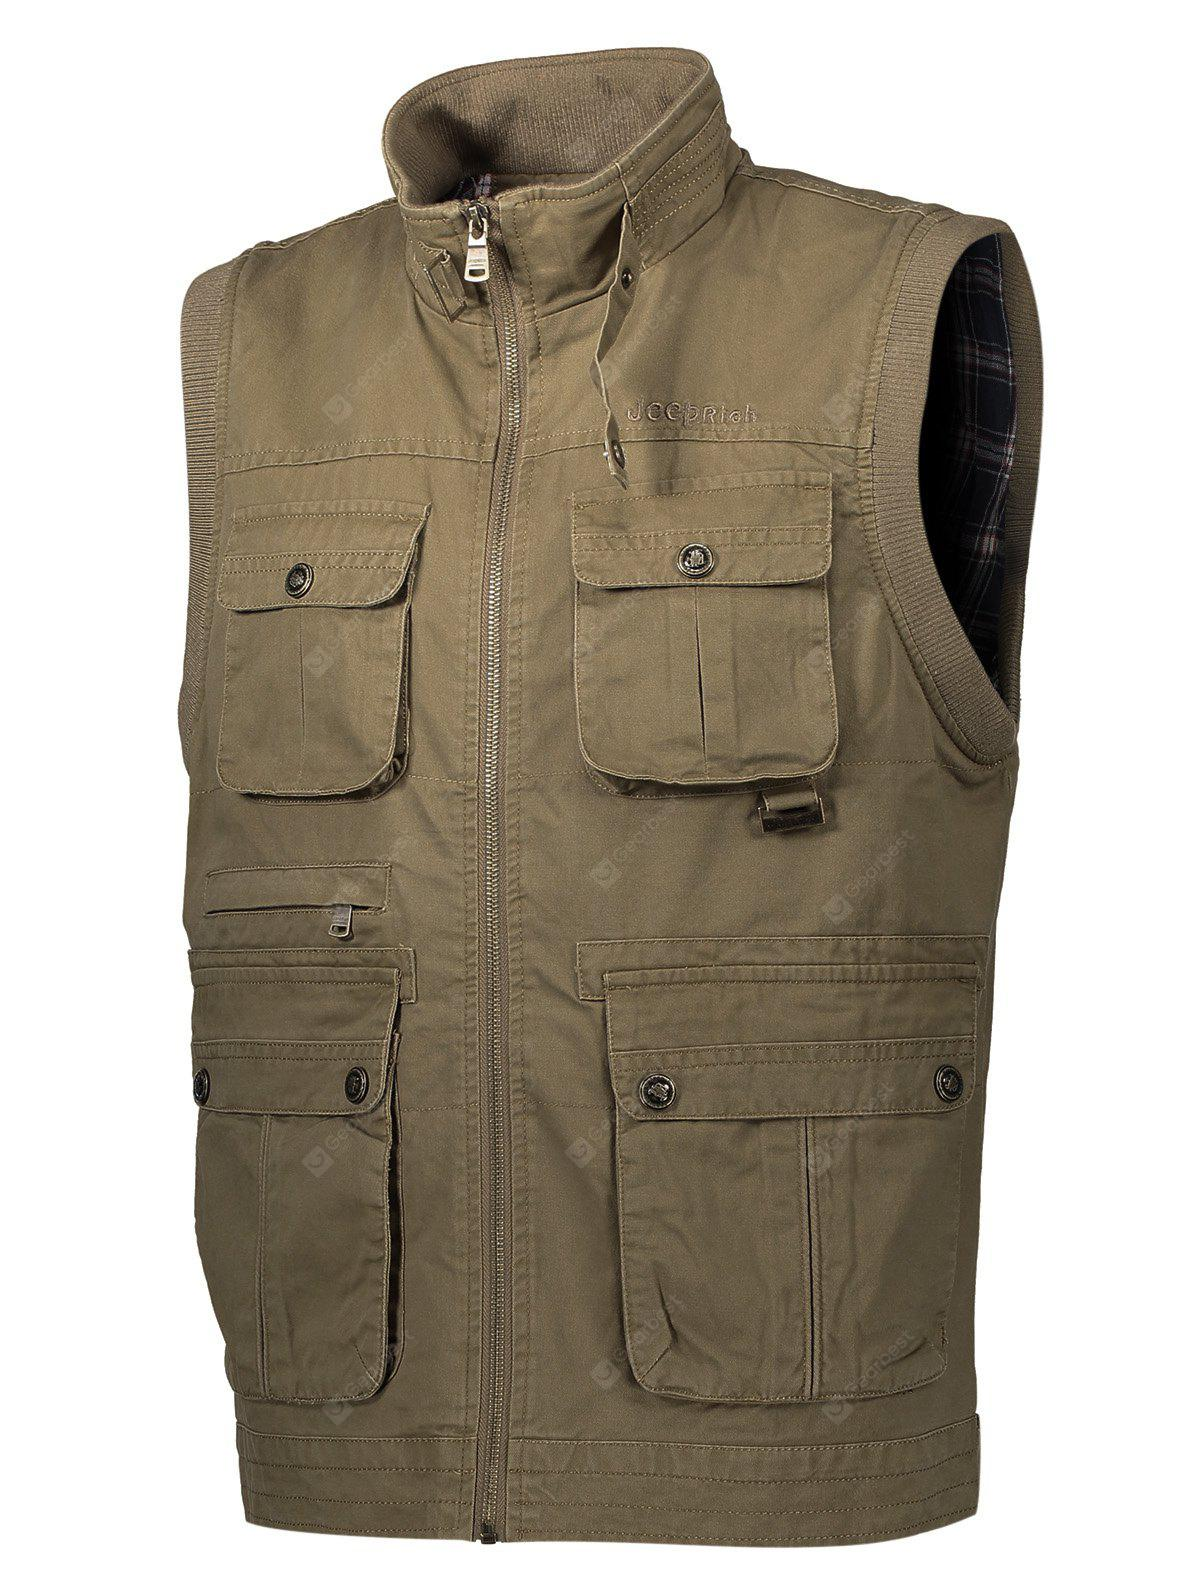 Jeep Rich Outdoor Casual Waistcoat for Men